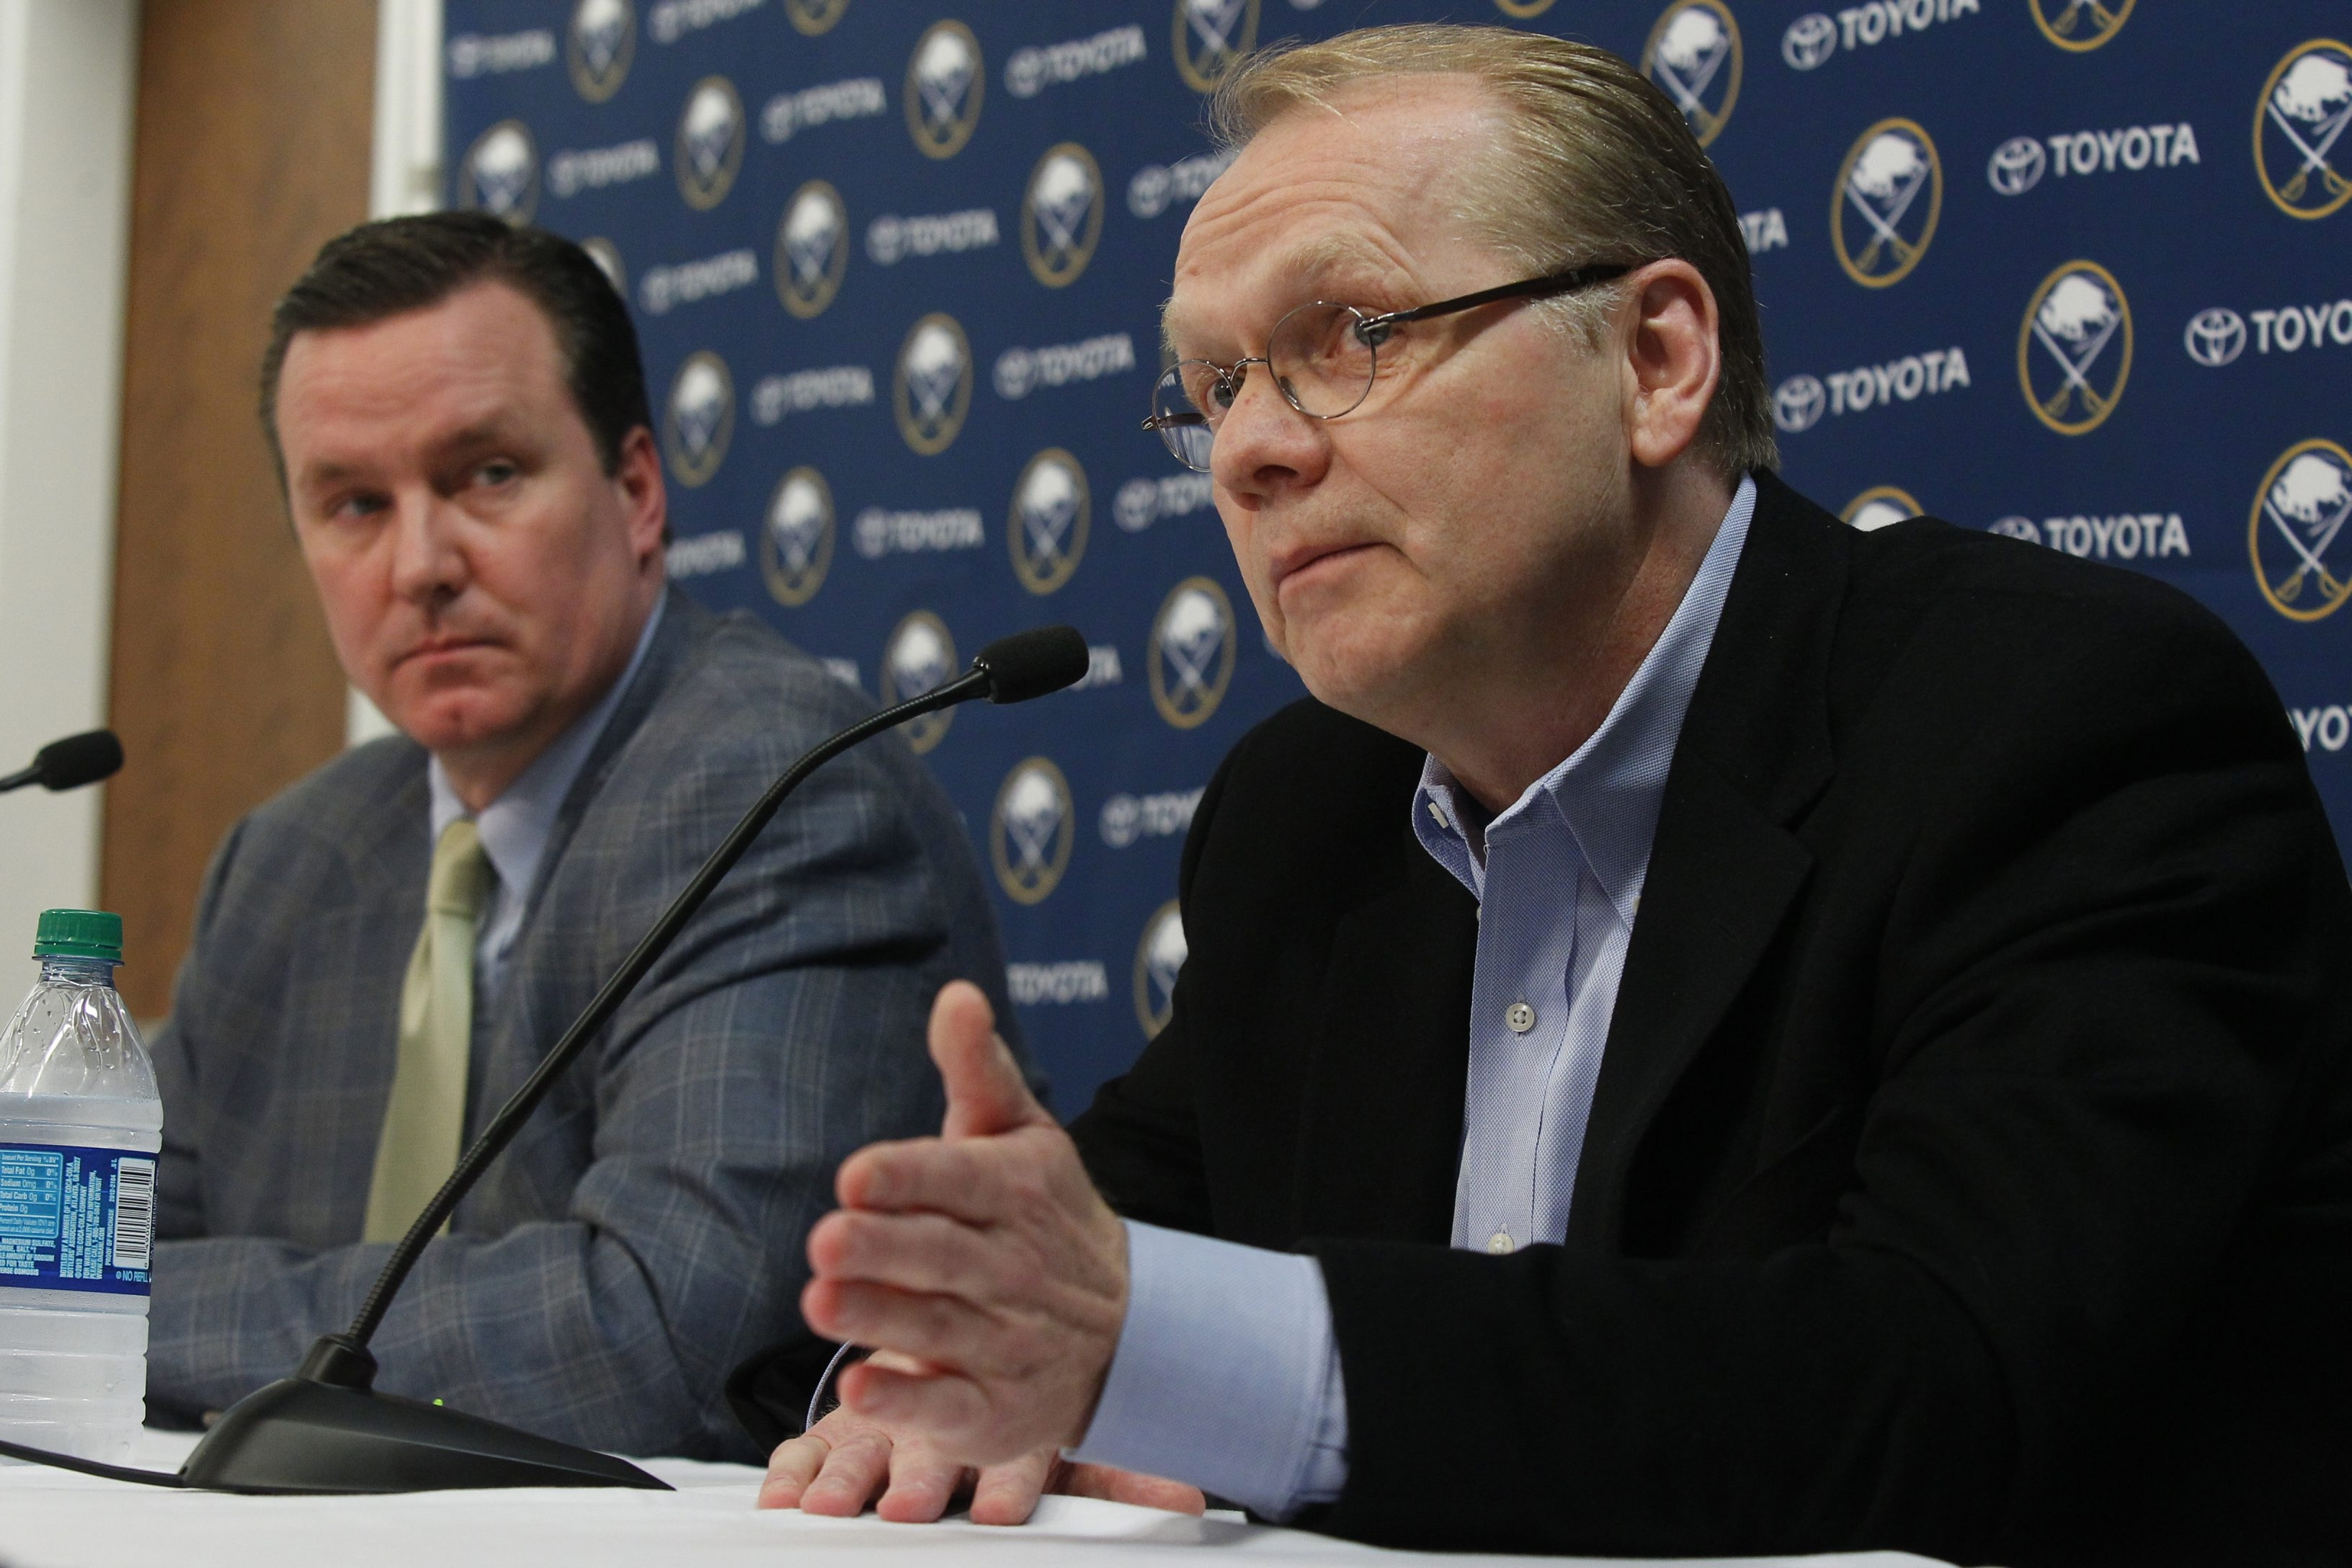 Buffalo Sabres President Ted Black, left, and general manager Darcy Regier talked about various aspects of the team's future at the end-of-season news conference in First Niagara Center on Monday. (Harry Scull Jr./Buffalo News)